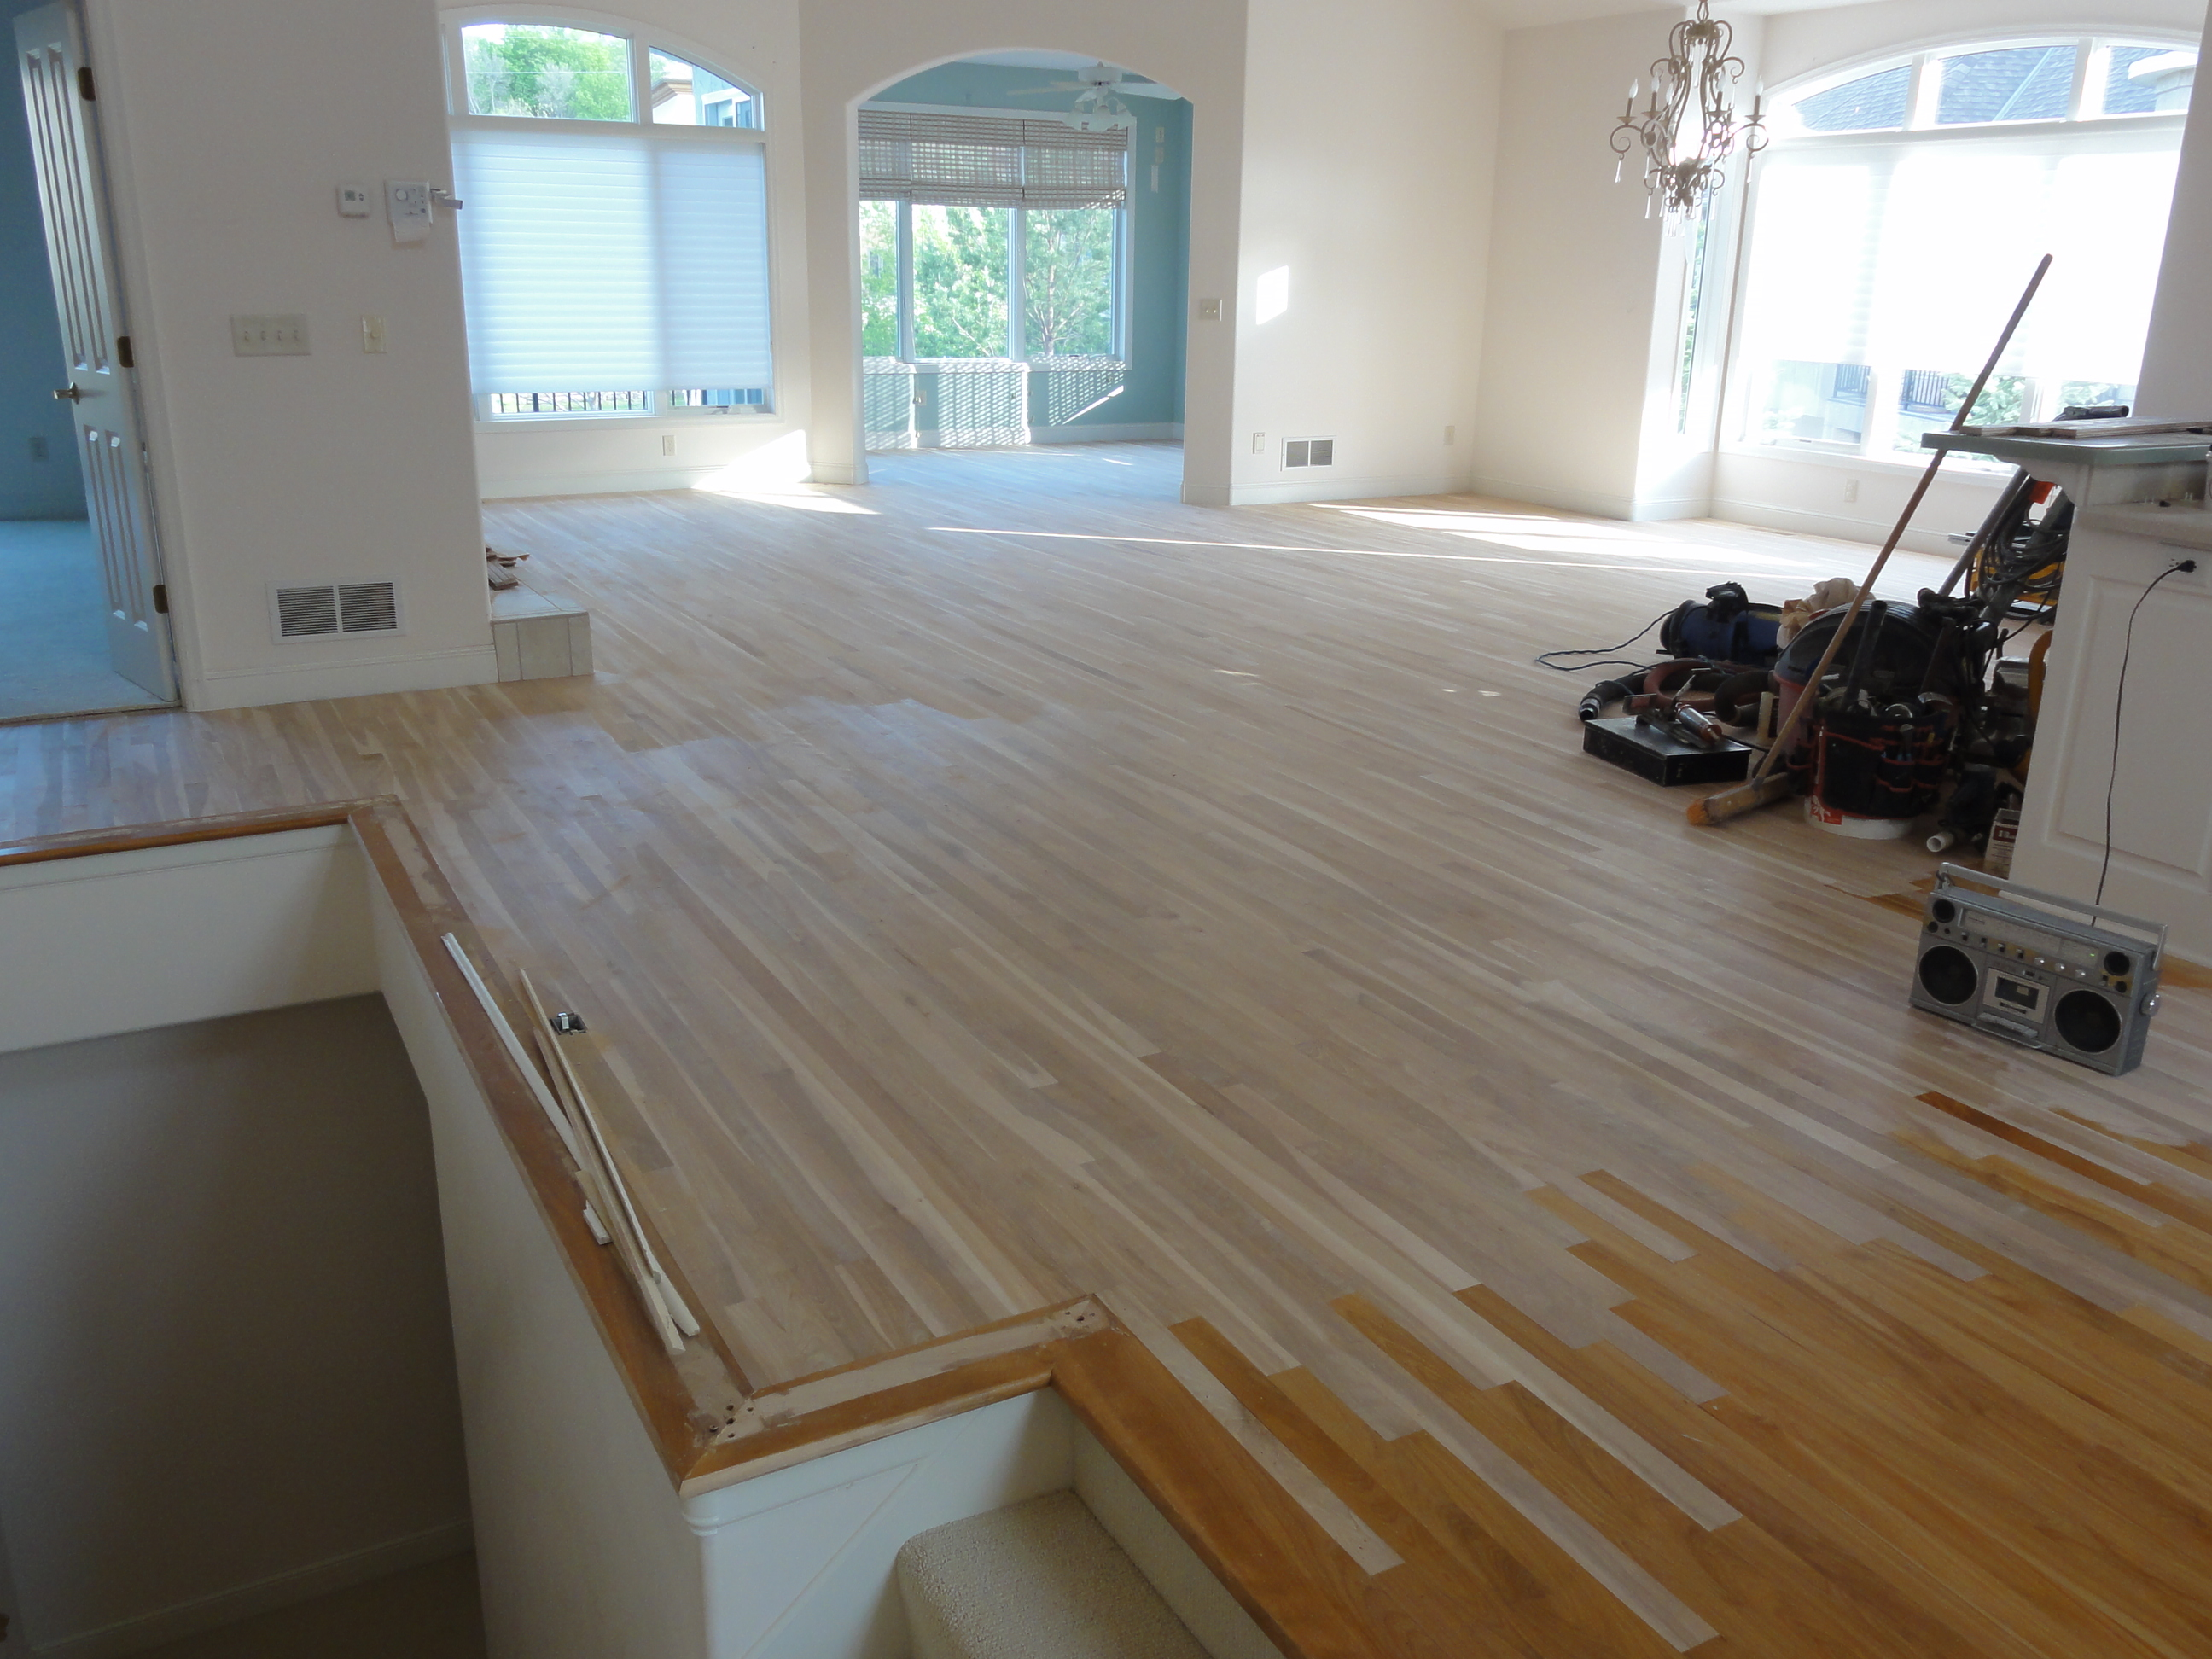 Install Birch Hardwood Floor - After - Lillydale